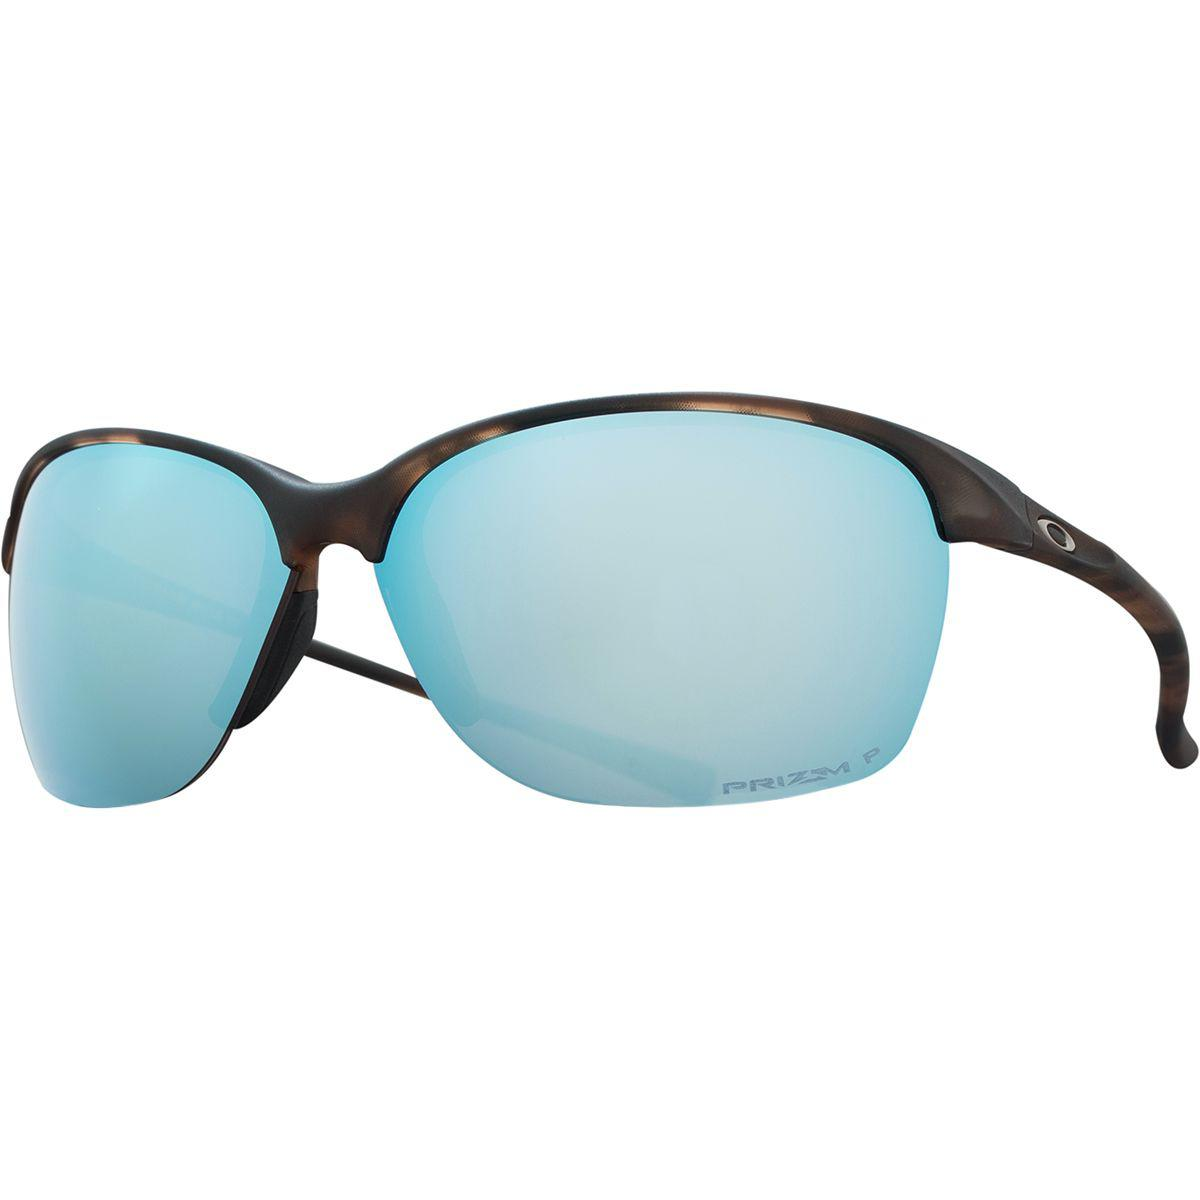 2bb14466392 Lyst - Oakley Unstoppable Prizm Polarized Sunglasses in Brown